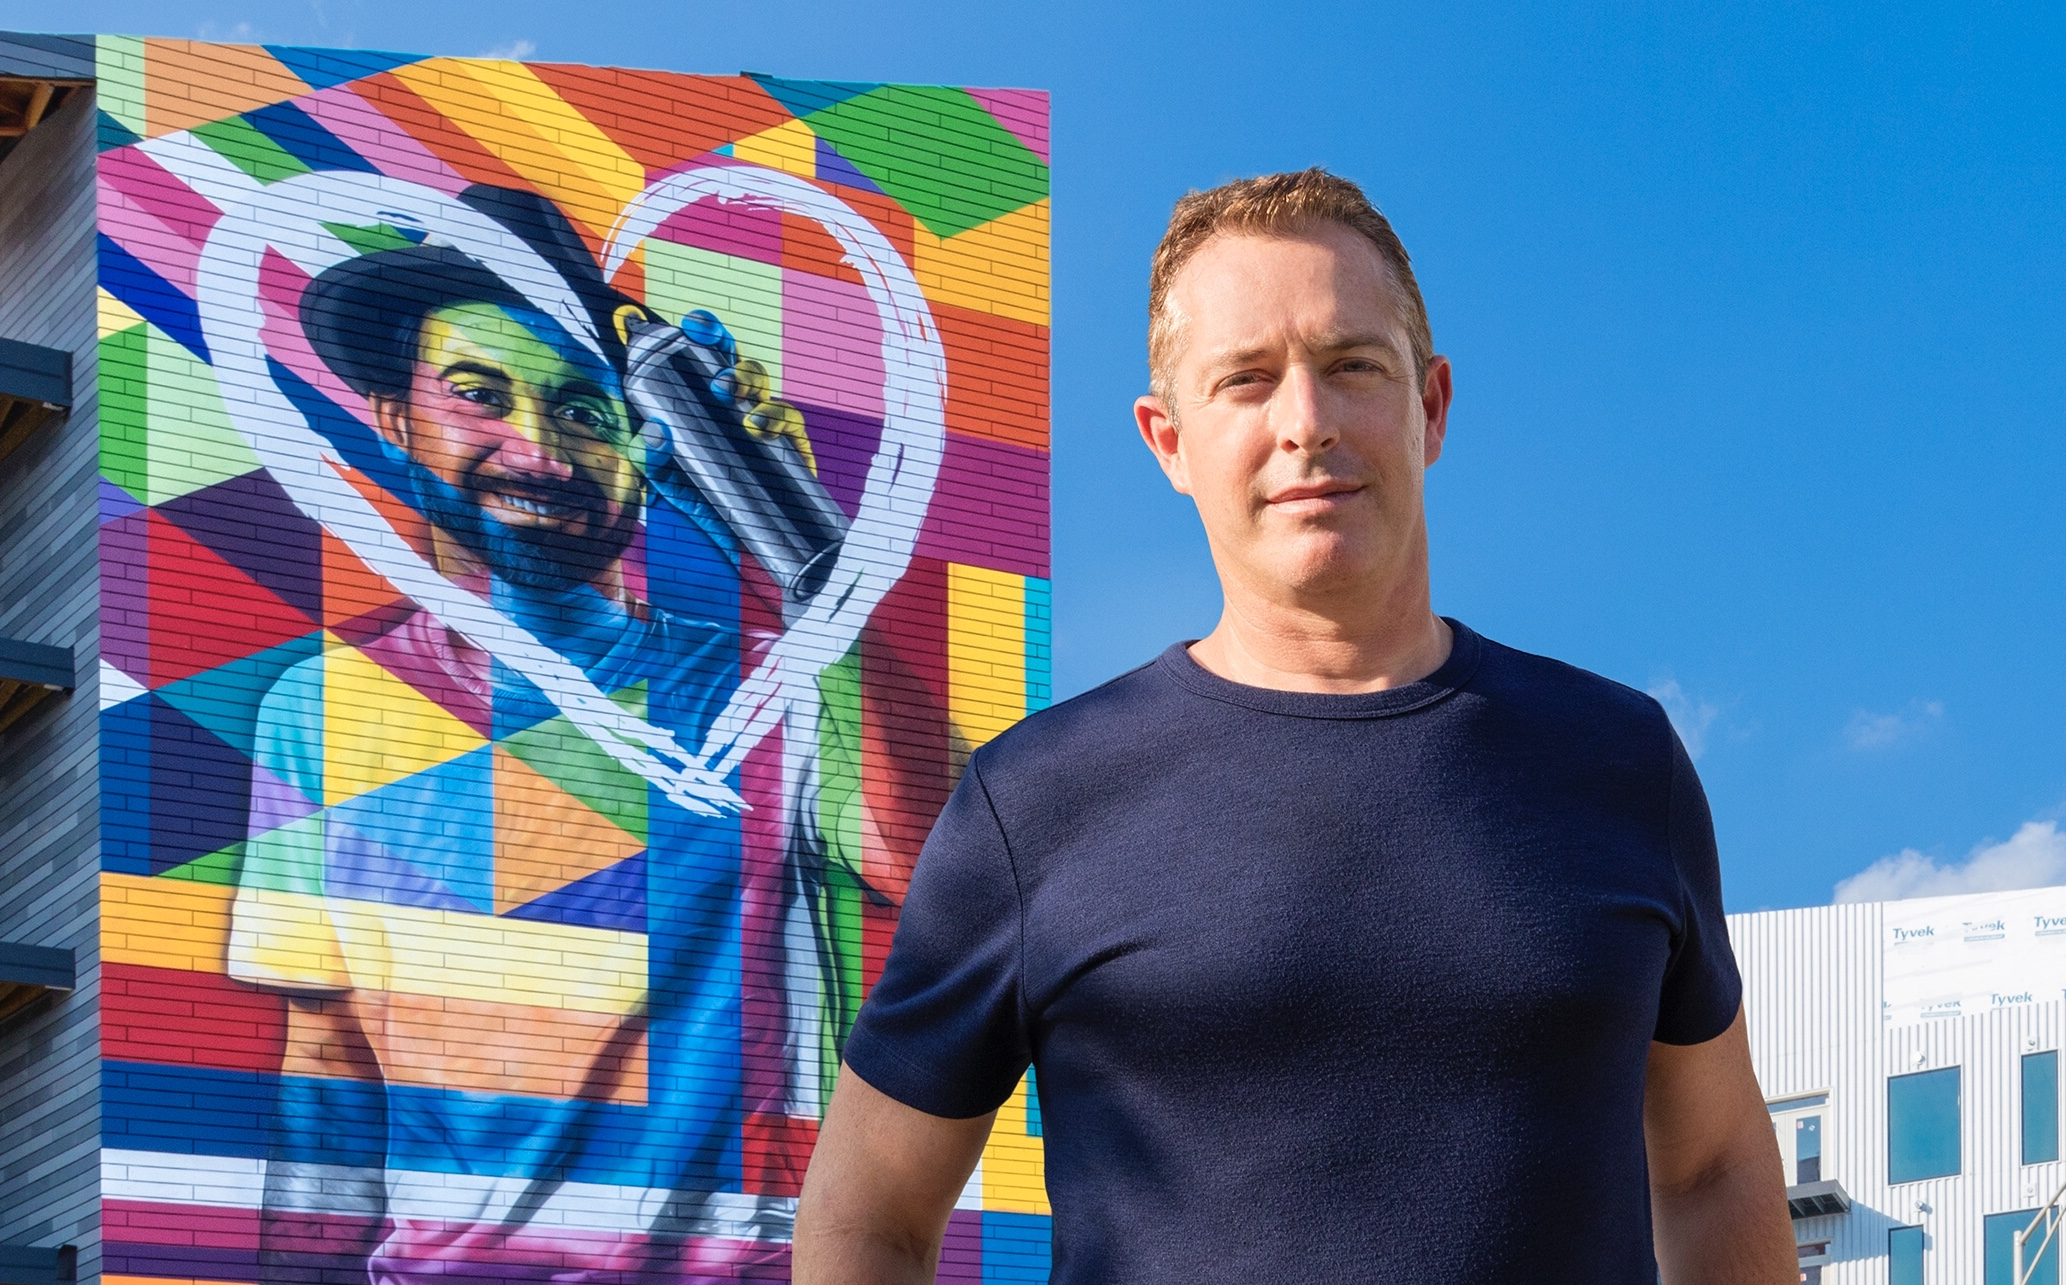 Brett in front of artist Eduardo Kobra's self-portrait mural at Gravity.